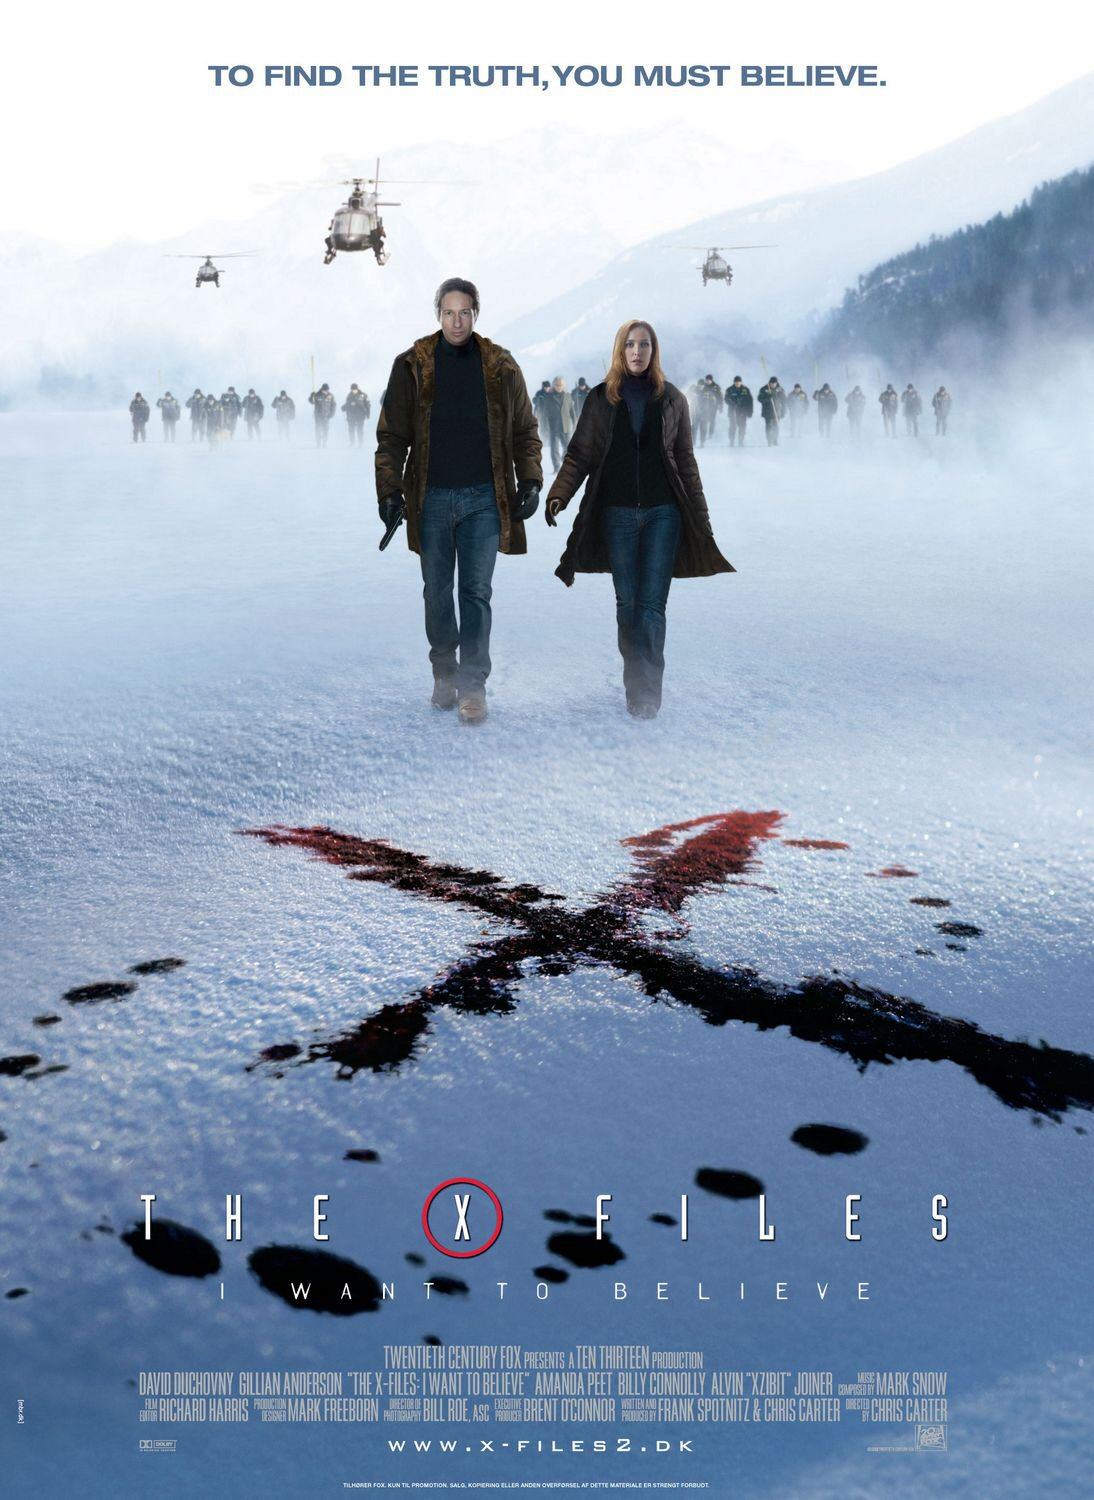 I Want to Believe poster 2  X Files I Want To Believe Poster